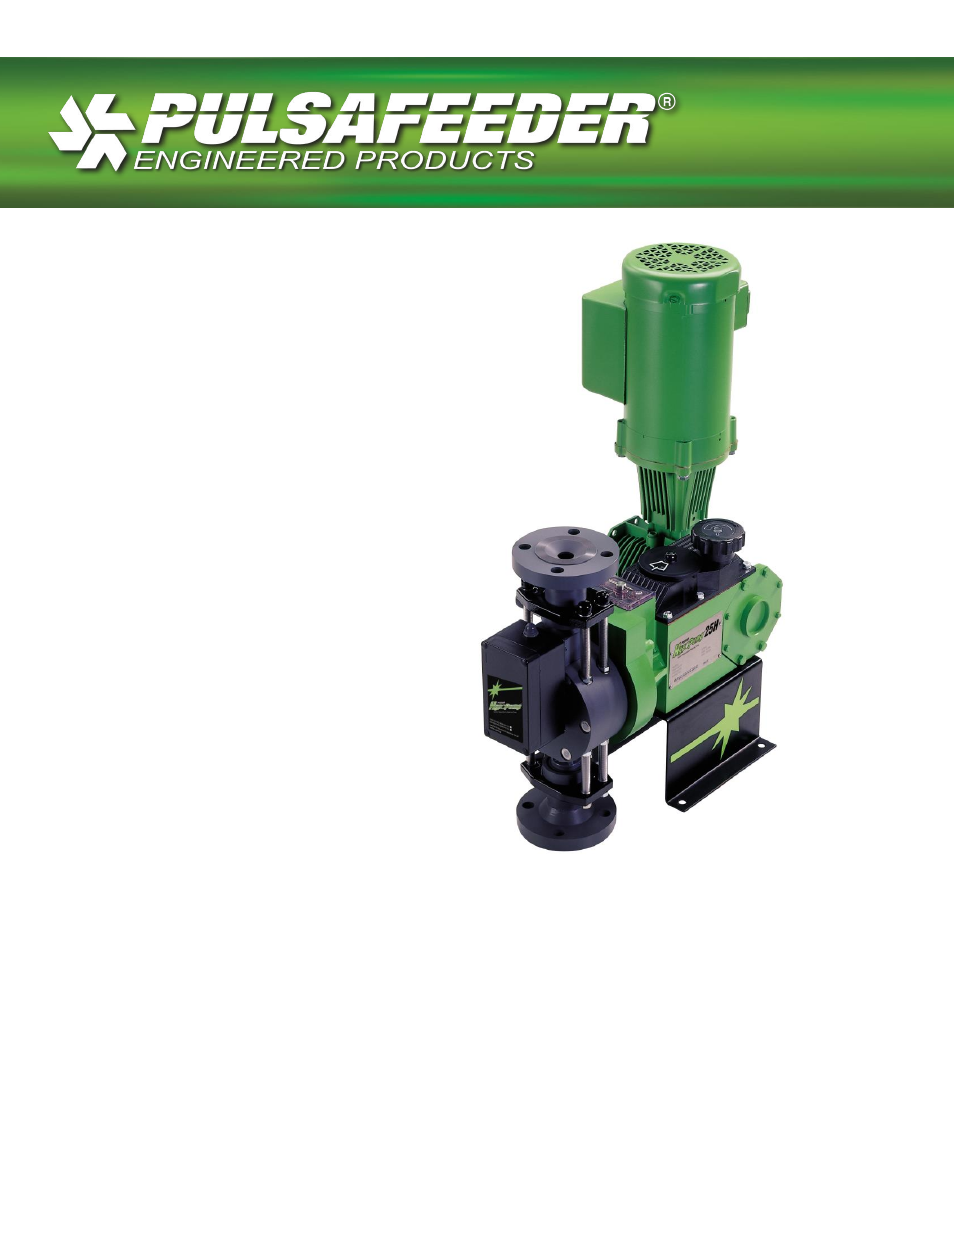 Pulsafeeder Pulsar Series HypoPump User Manual | 15 pages